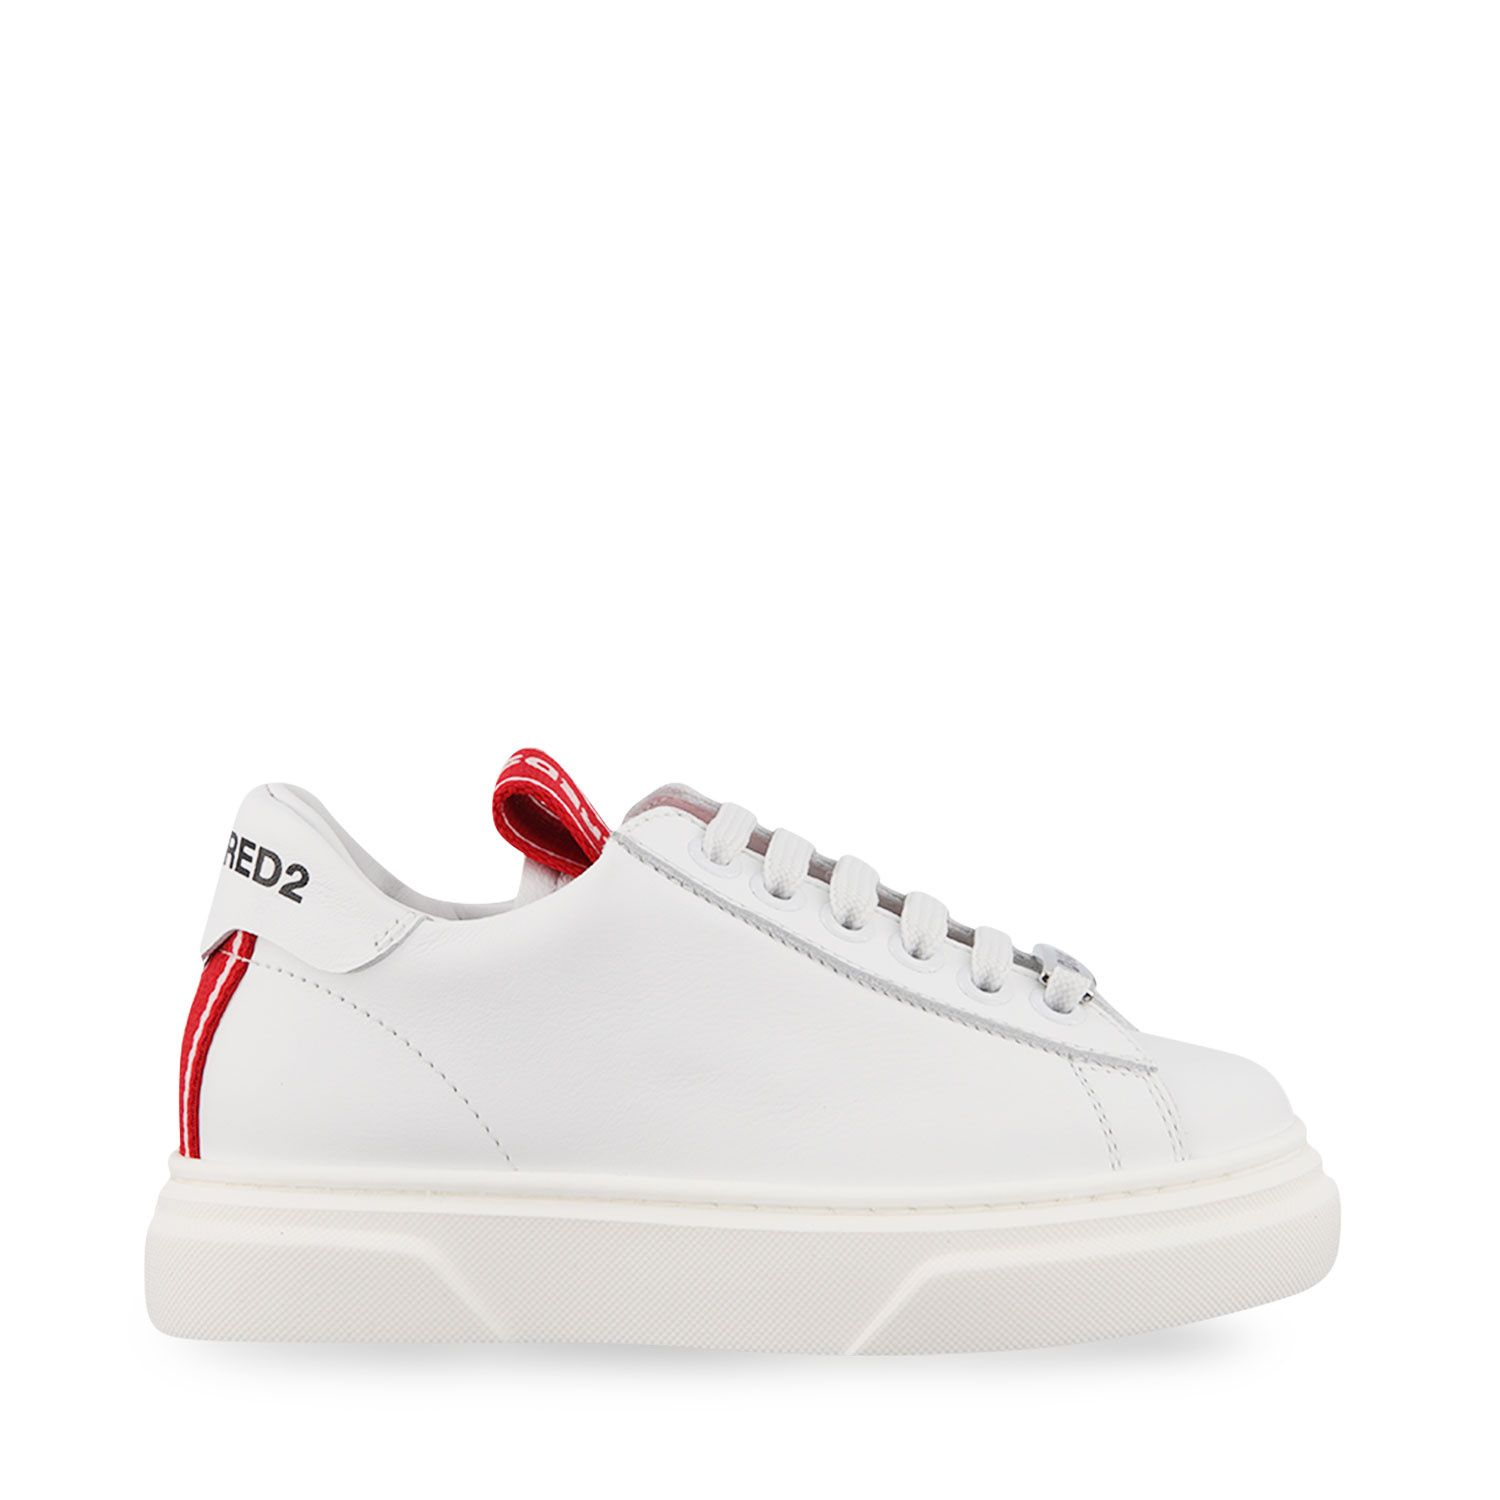 Picture of Dsquared2 67076 kids sneakers white